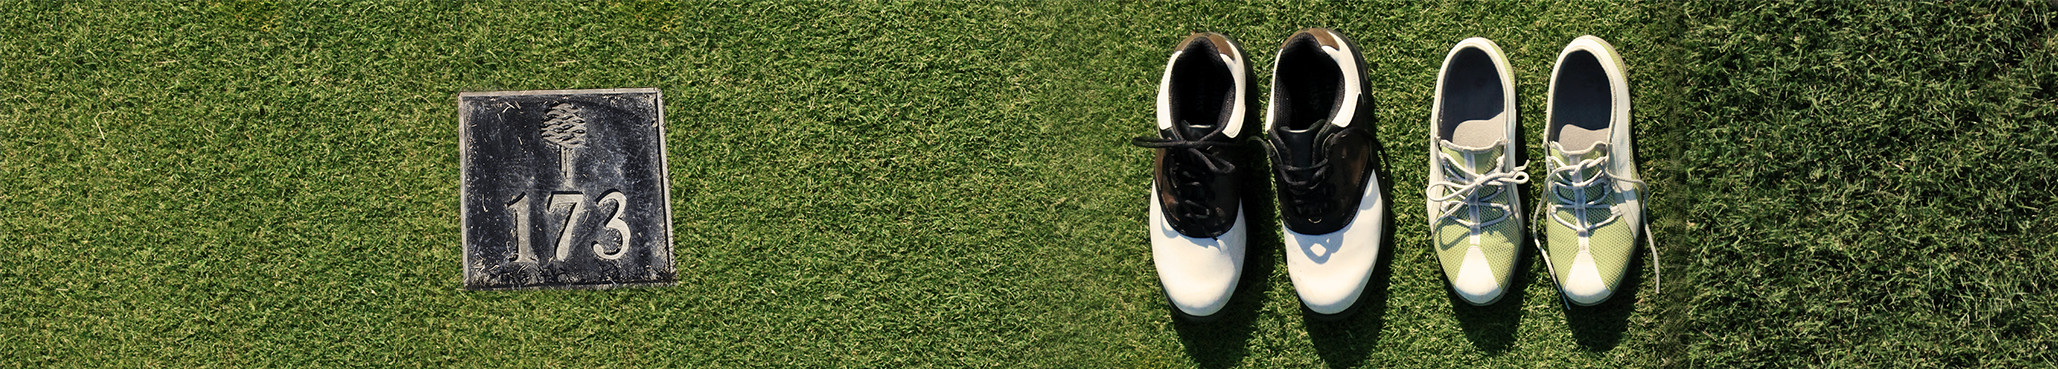 Two pair of golf shoes on the grass next to a yardage marker